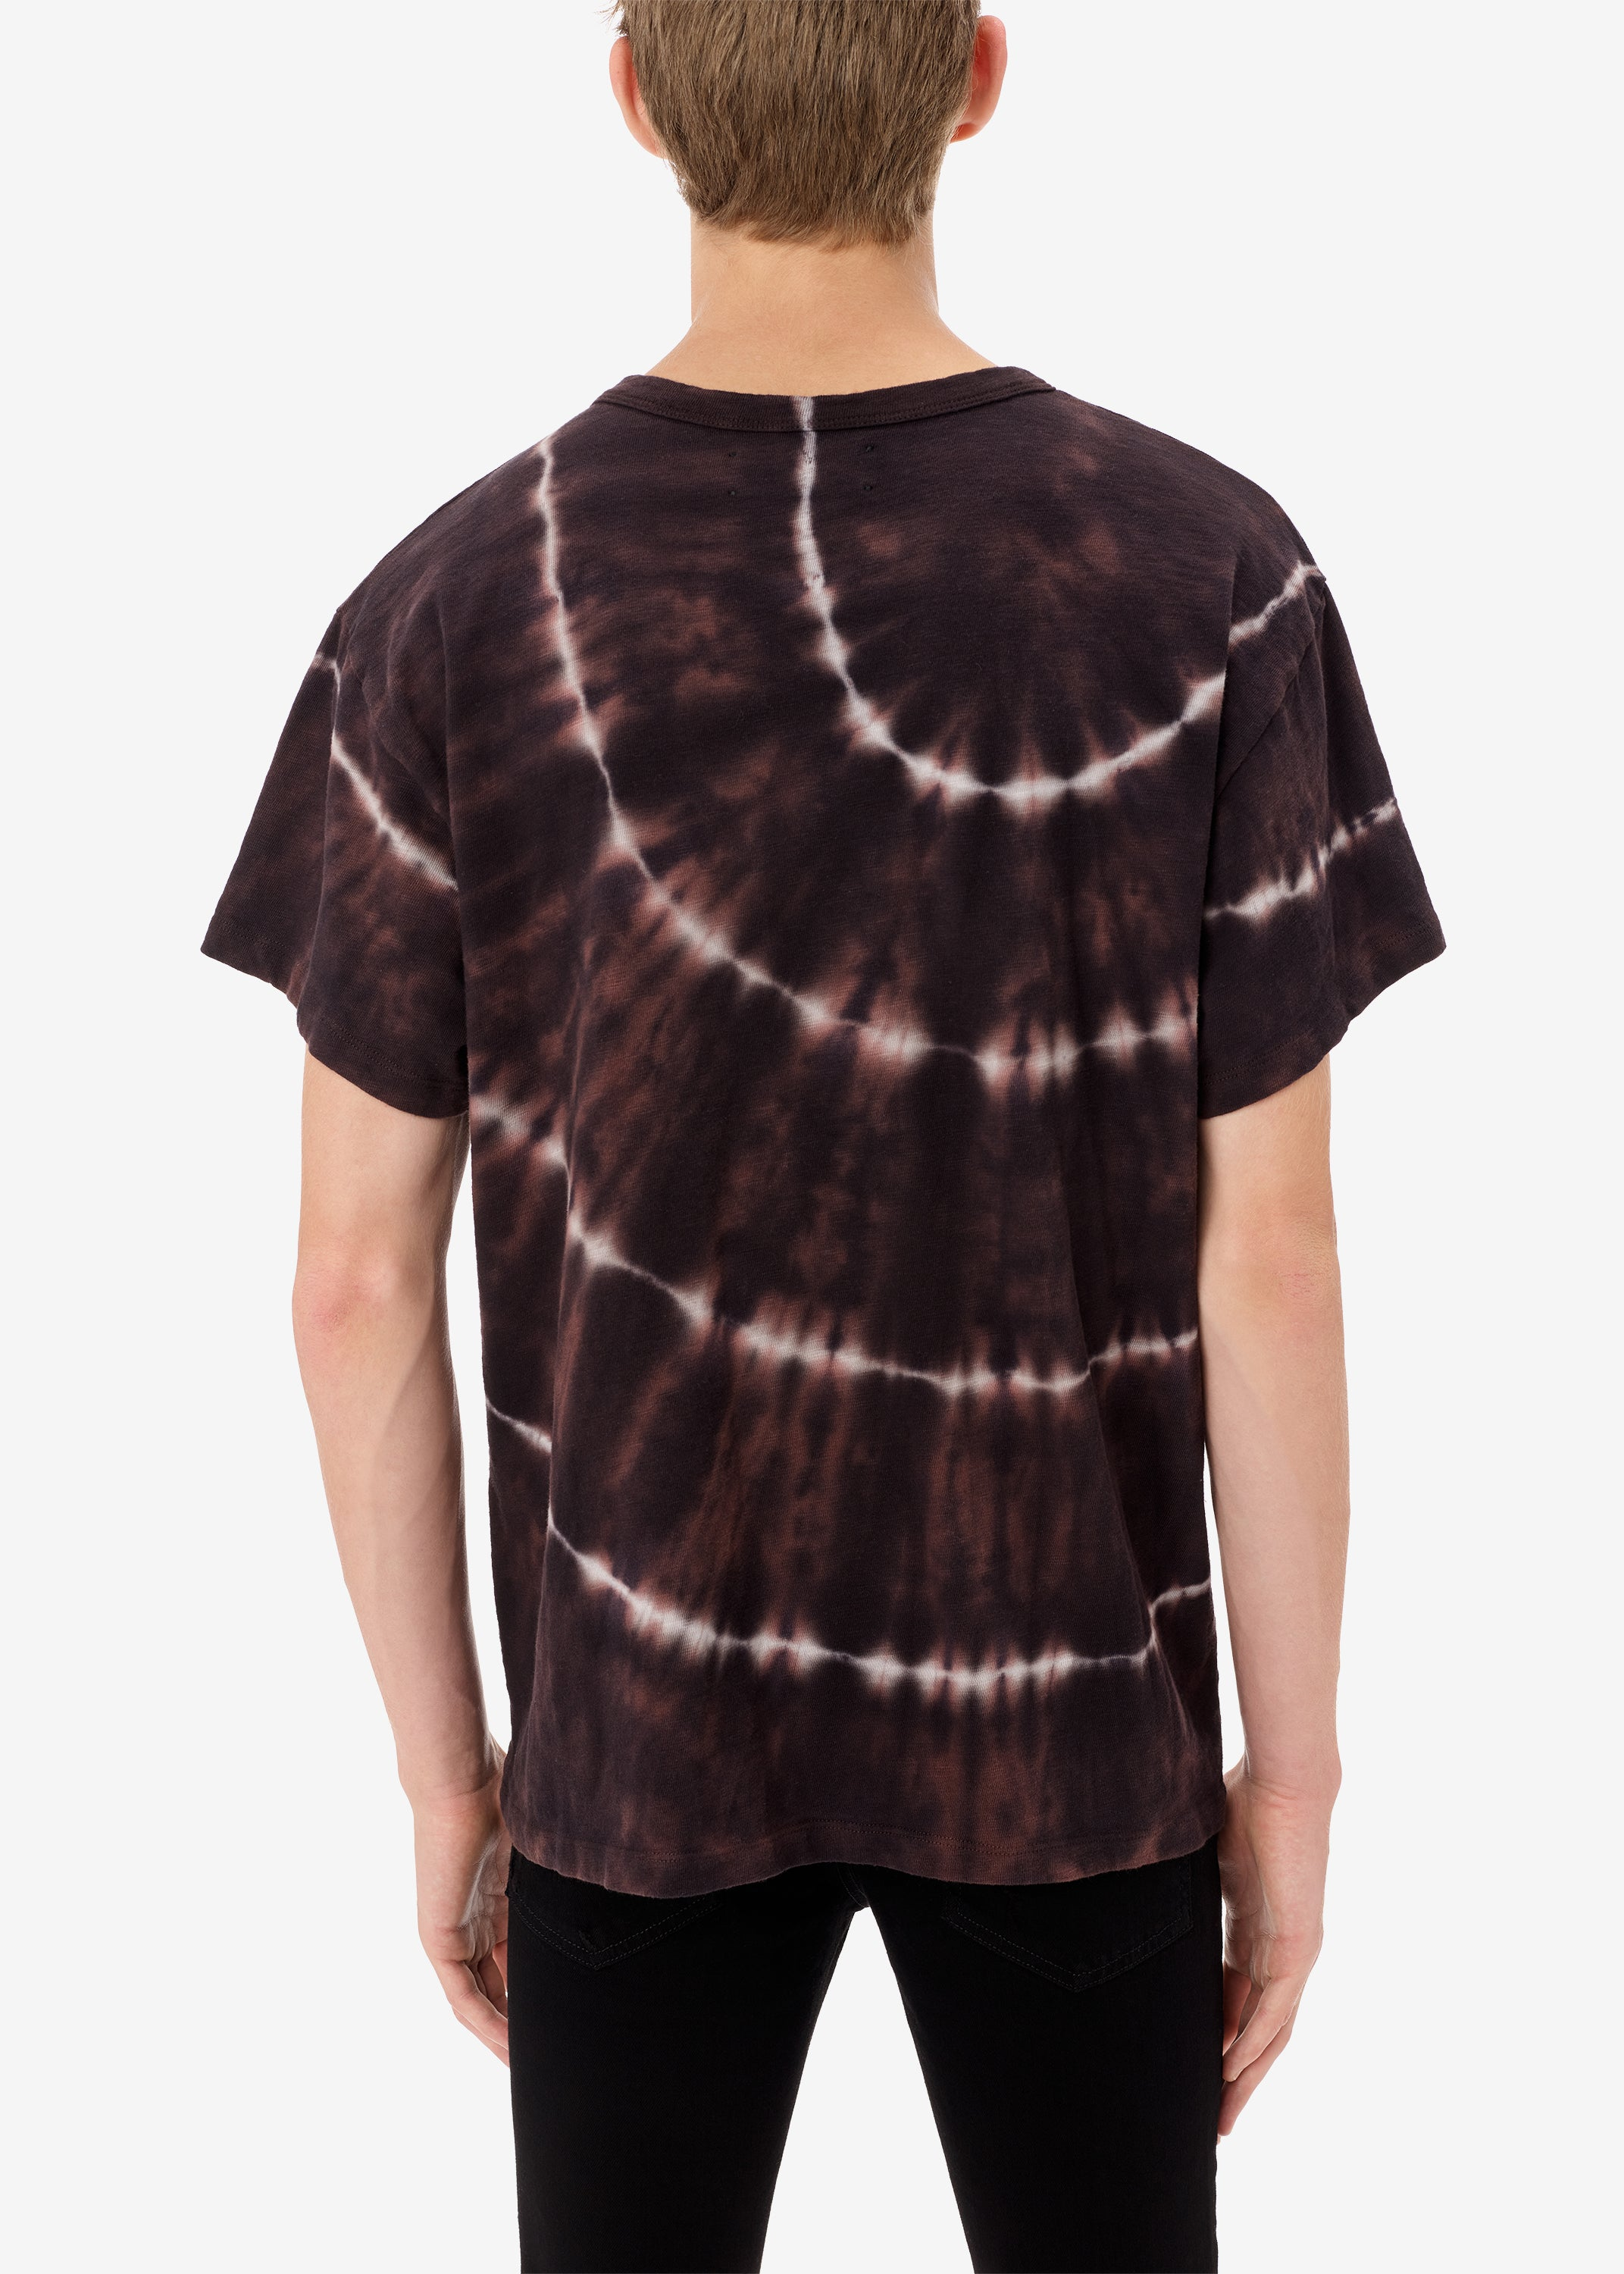 exclusive-tie-dye-tee-multi-color-image-4